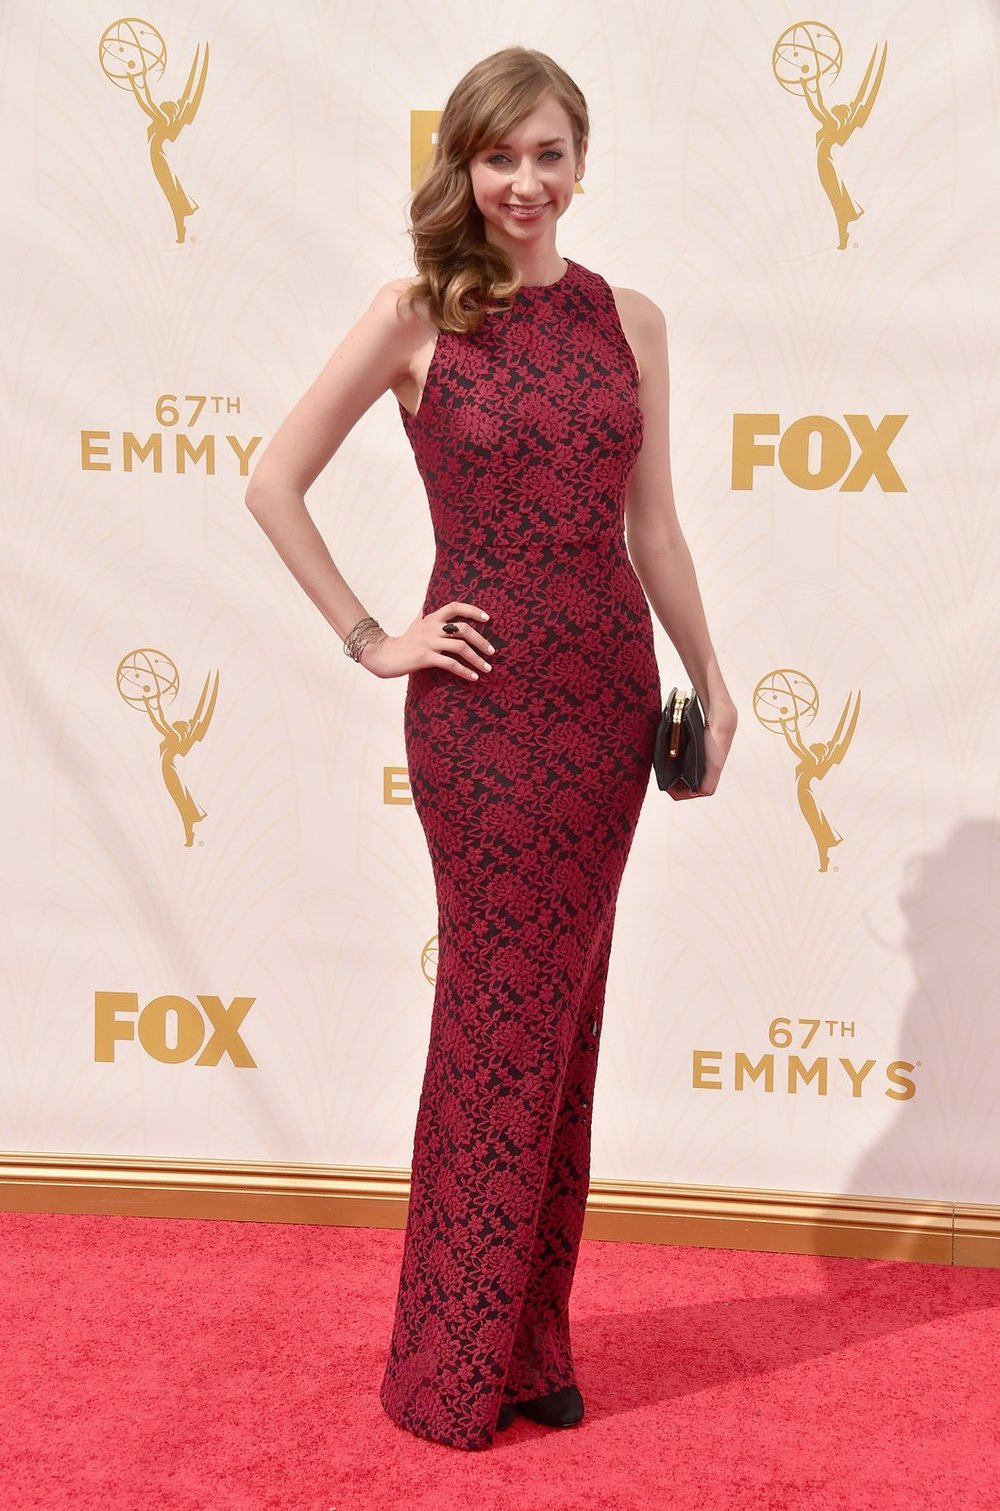 lauren-lapkus-emmys-red-carpet-2015.jpg